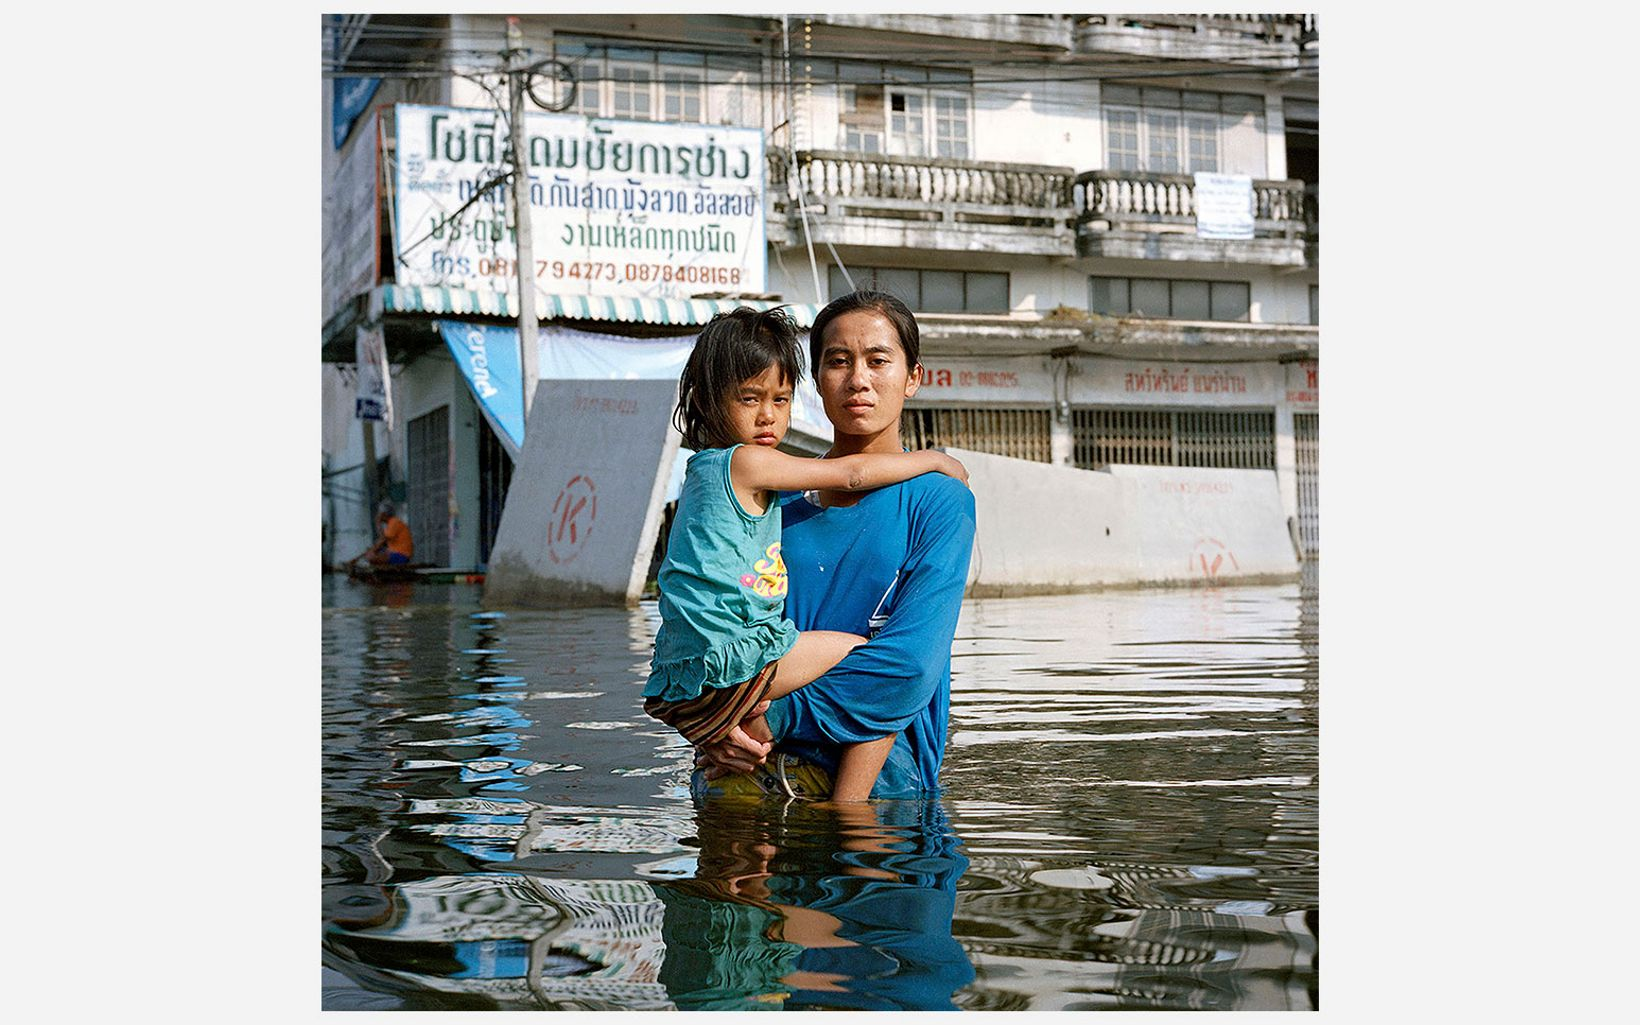 Anchalee Koyama holds her daughter over deep floodwater in the Taweewattana district of Bangkok, Thailand